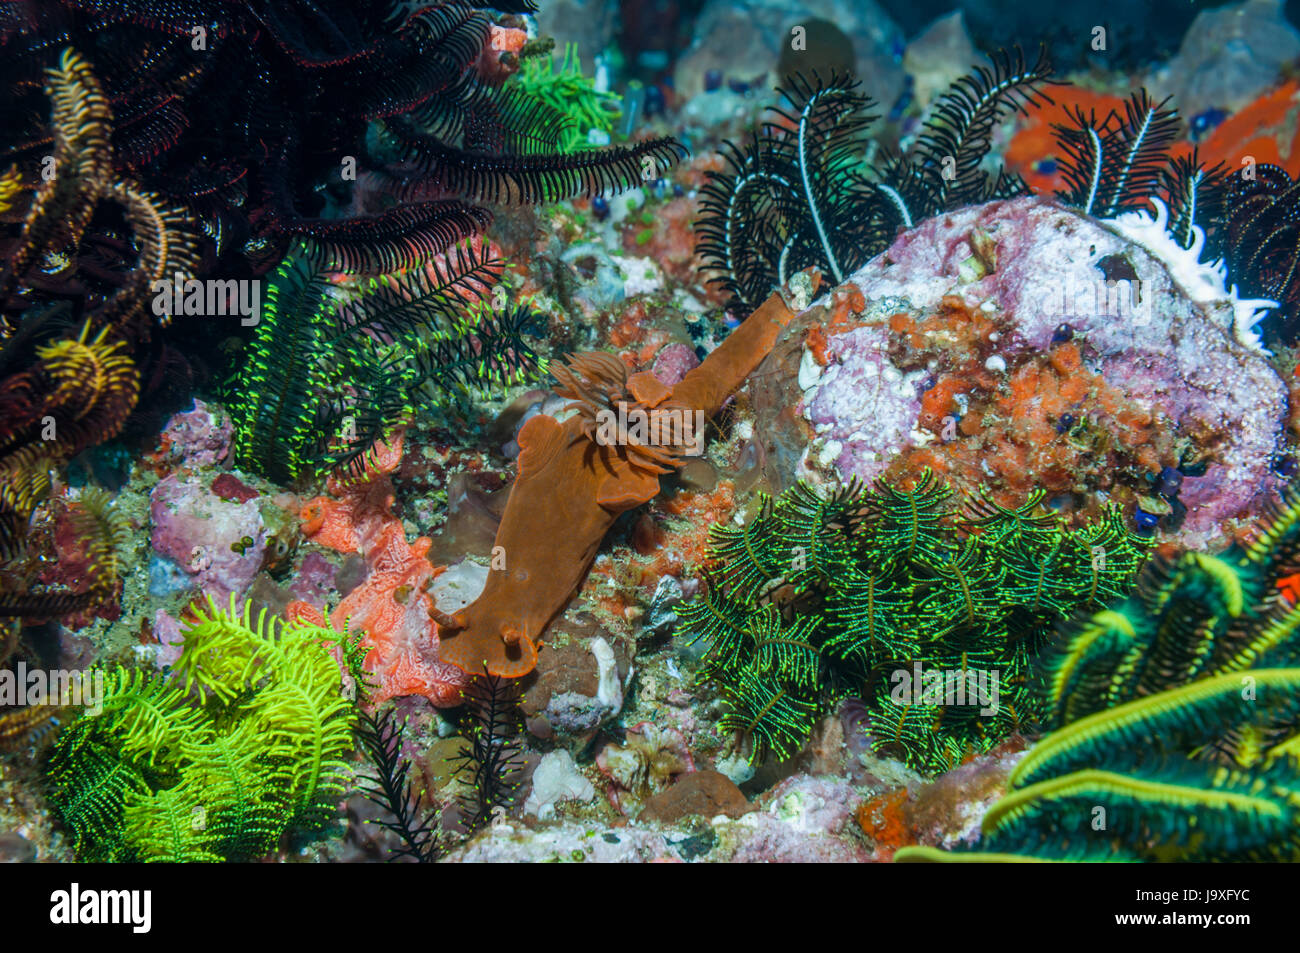 Nudibranch [Ceratosoma gracillimum] on coral reef with sea squiirts and feather stars.  Indonesia. - Stock Image